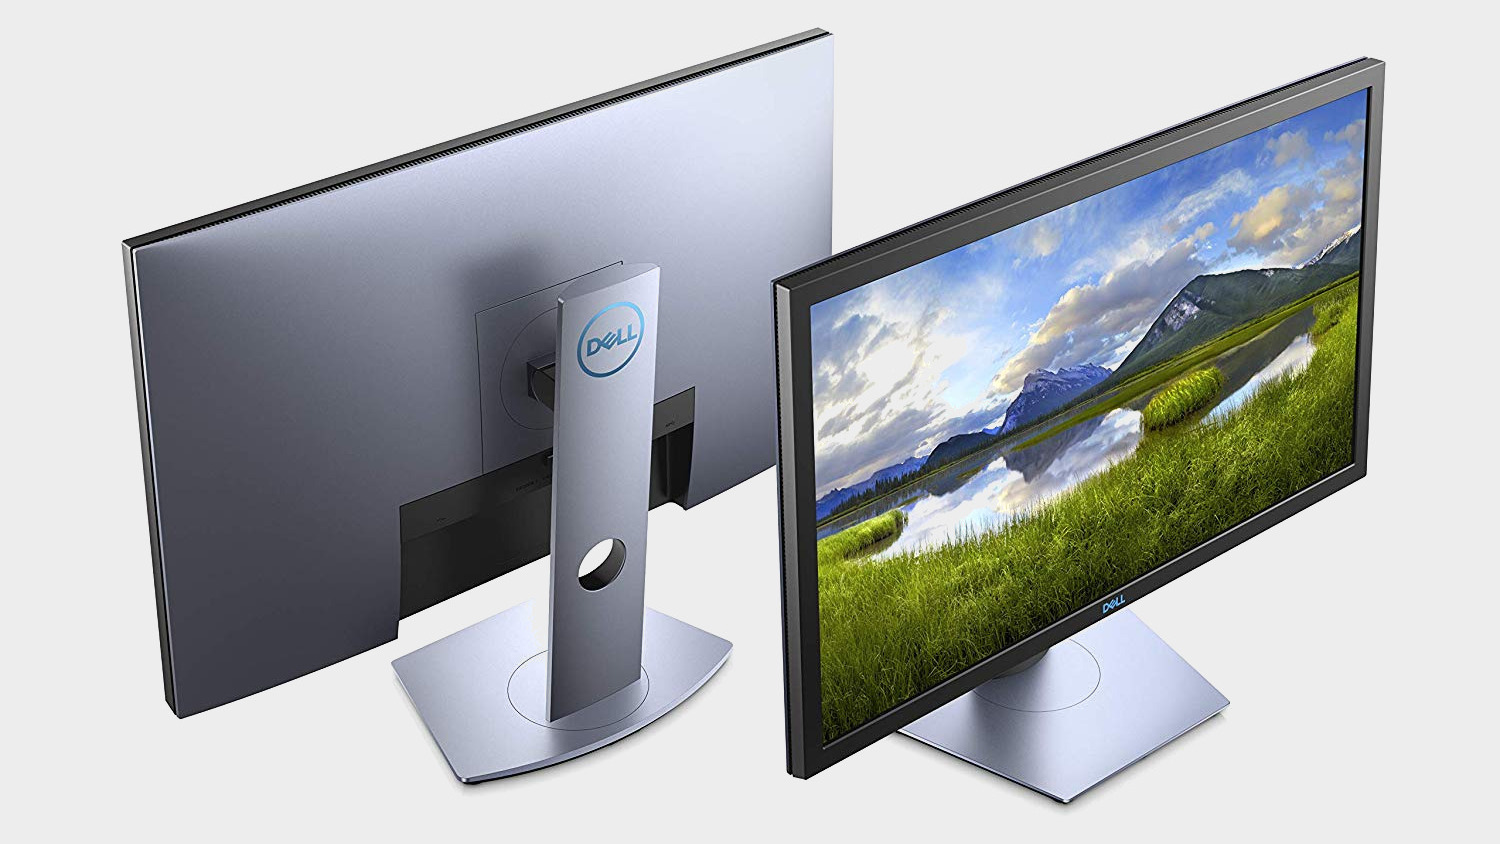 Dell's 24-inch 144Hz FreeSync monitor is just $150 right now